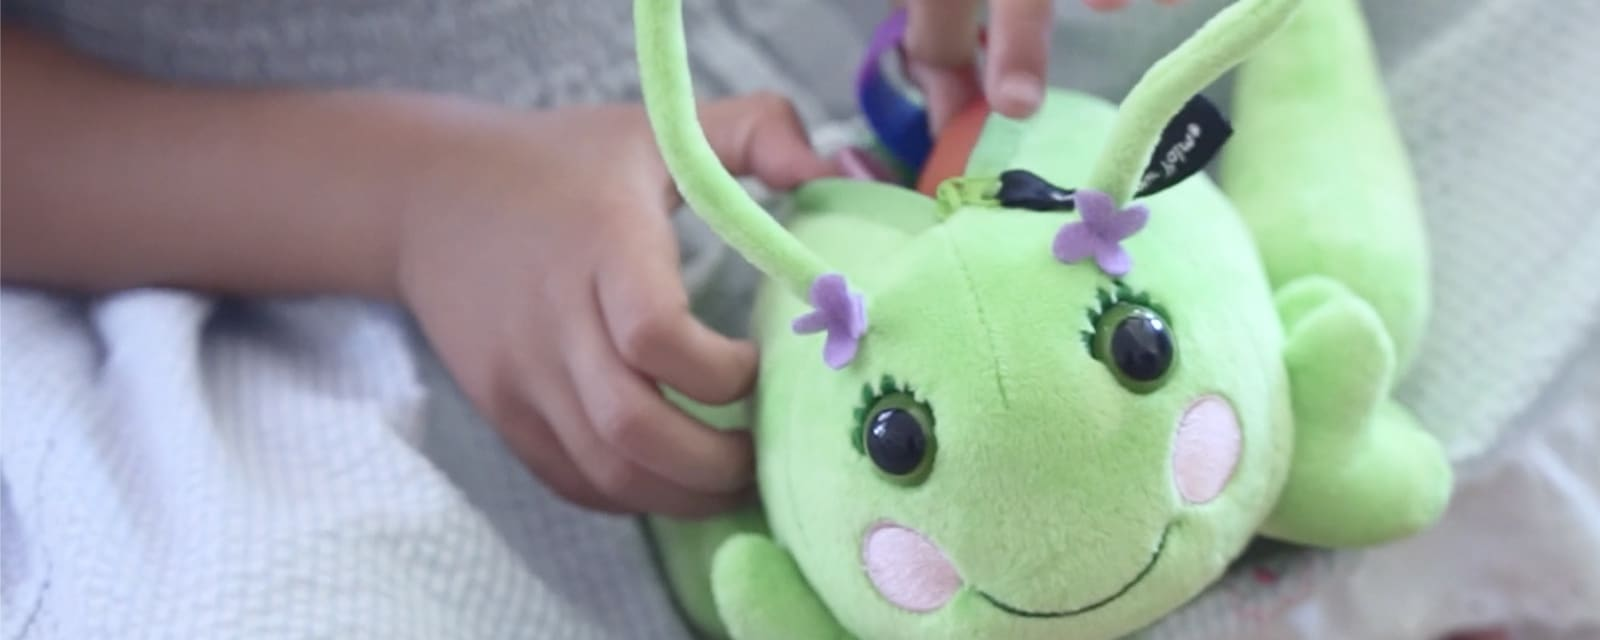 Smiling Poppie grasshopper plush with purple flowers and zipper pocket.